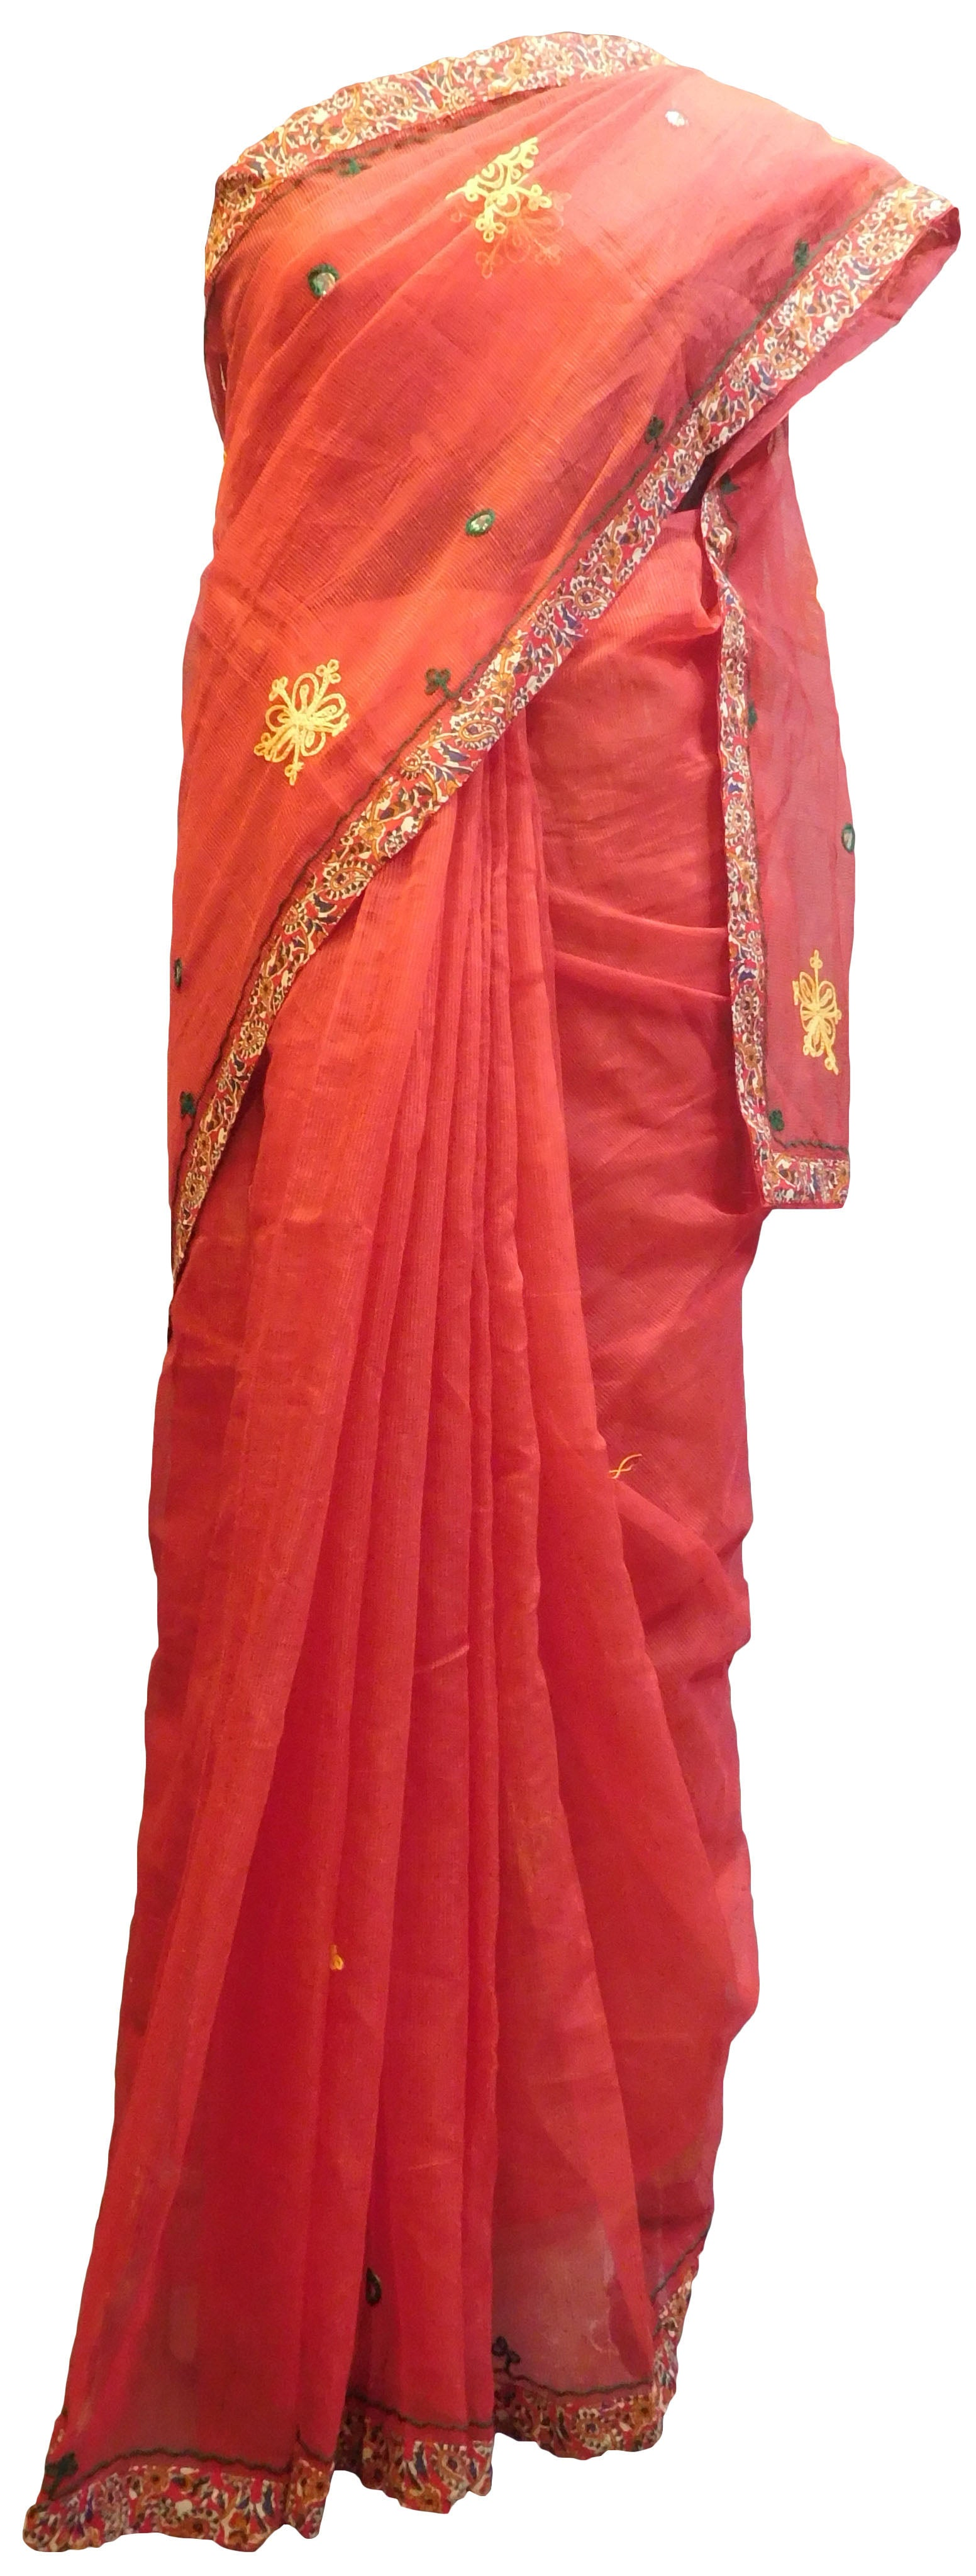 SMSAREE Red Designer Wedding Partywear Supernet (Cotton) Thread Hand Embroidery Work Bridal Saree Sari With Blouse Piece E916